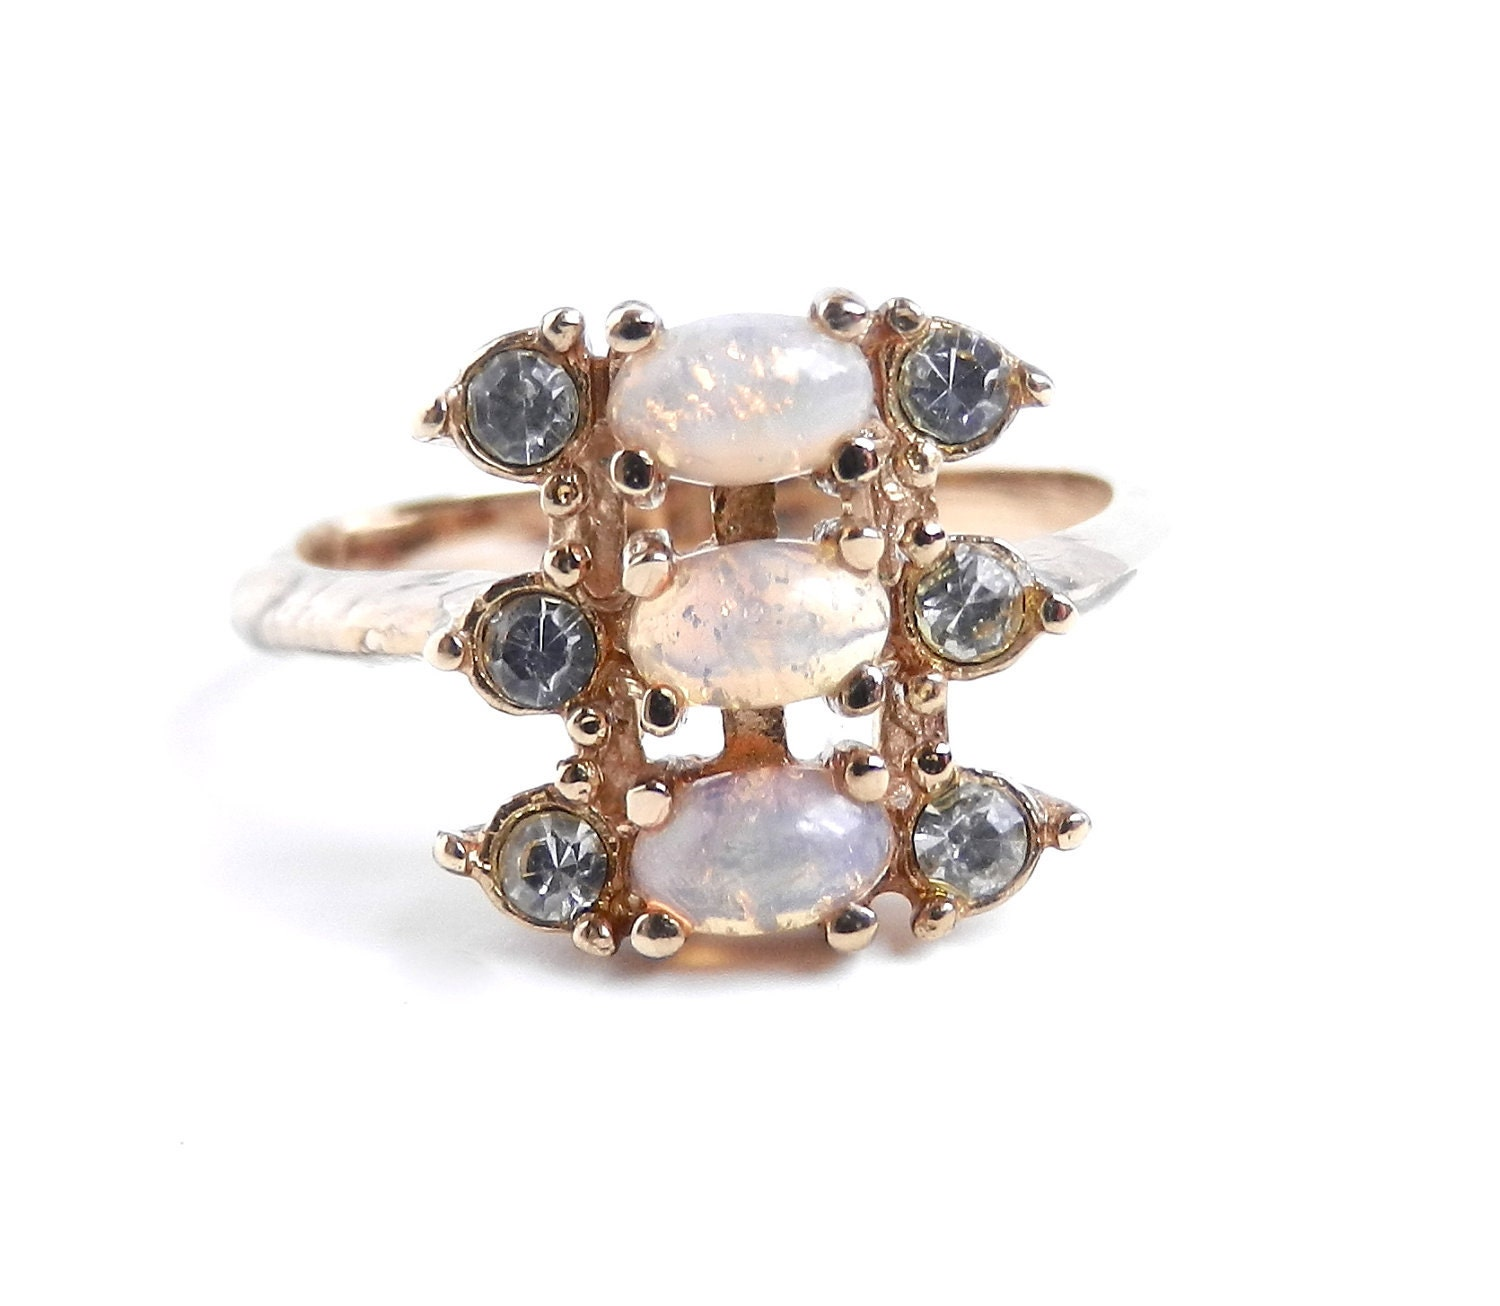 Opal Amp Rhinestone Ring Vintage Size 9 Costume Jewelry